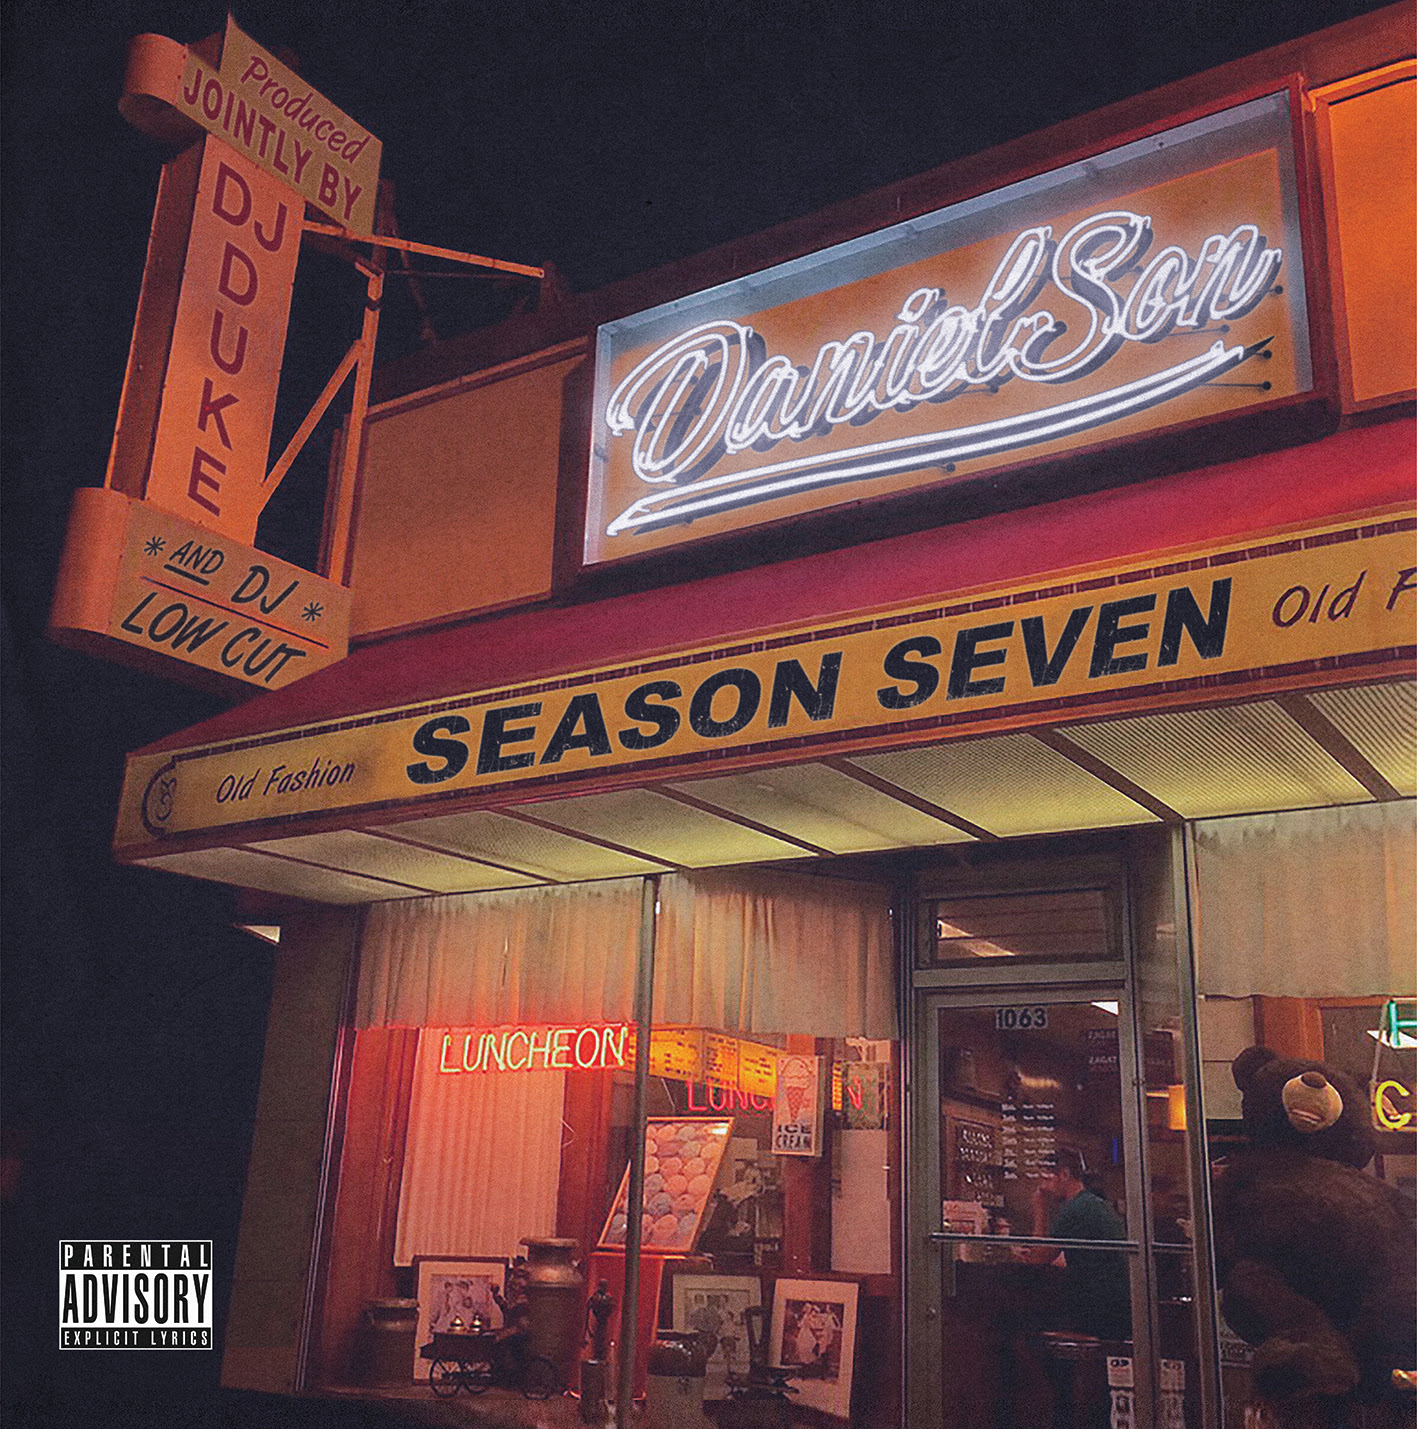 Daniel_son_x_dj_duke_x_dj_low_cut_season_7